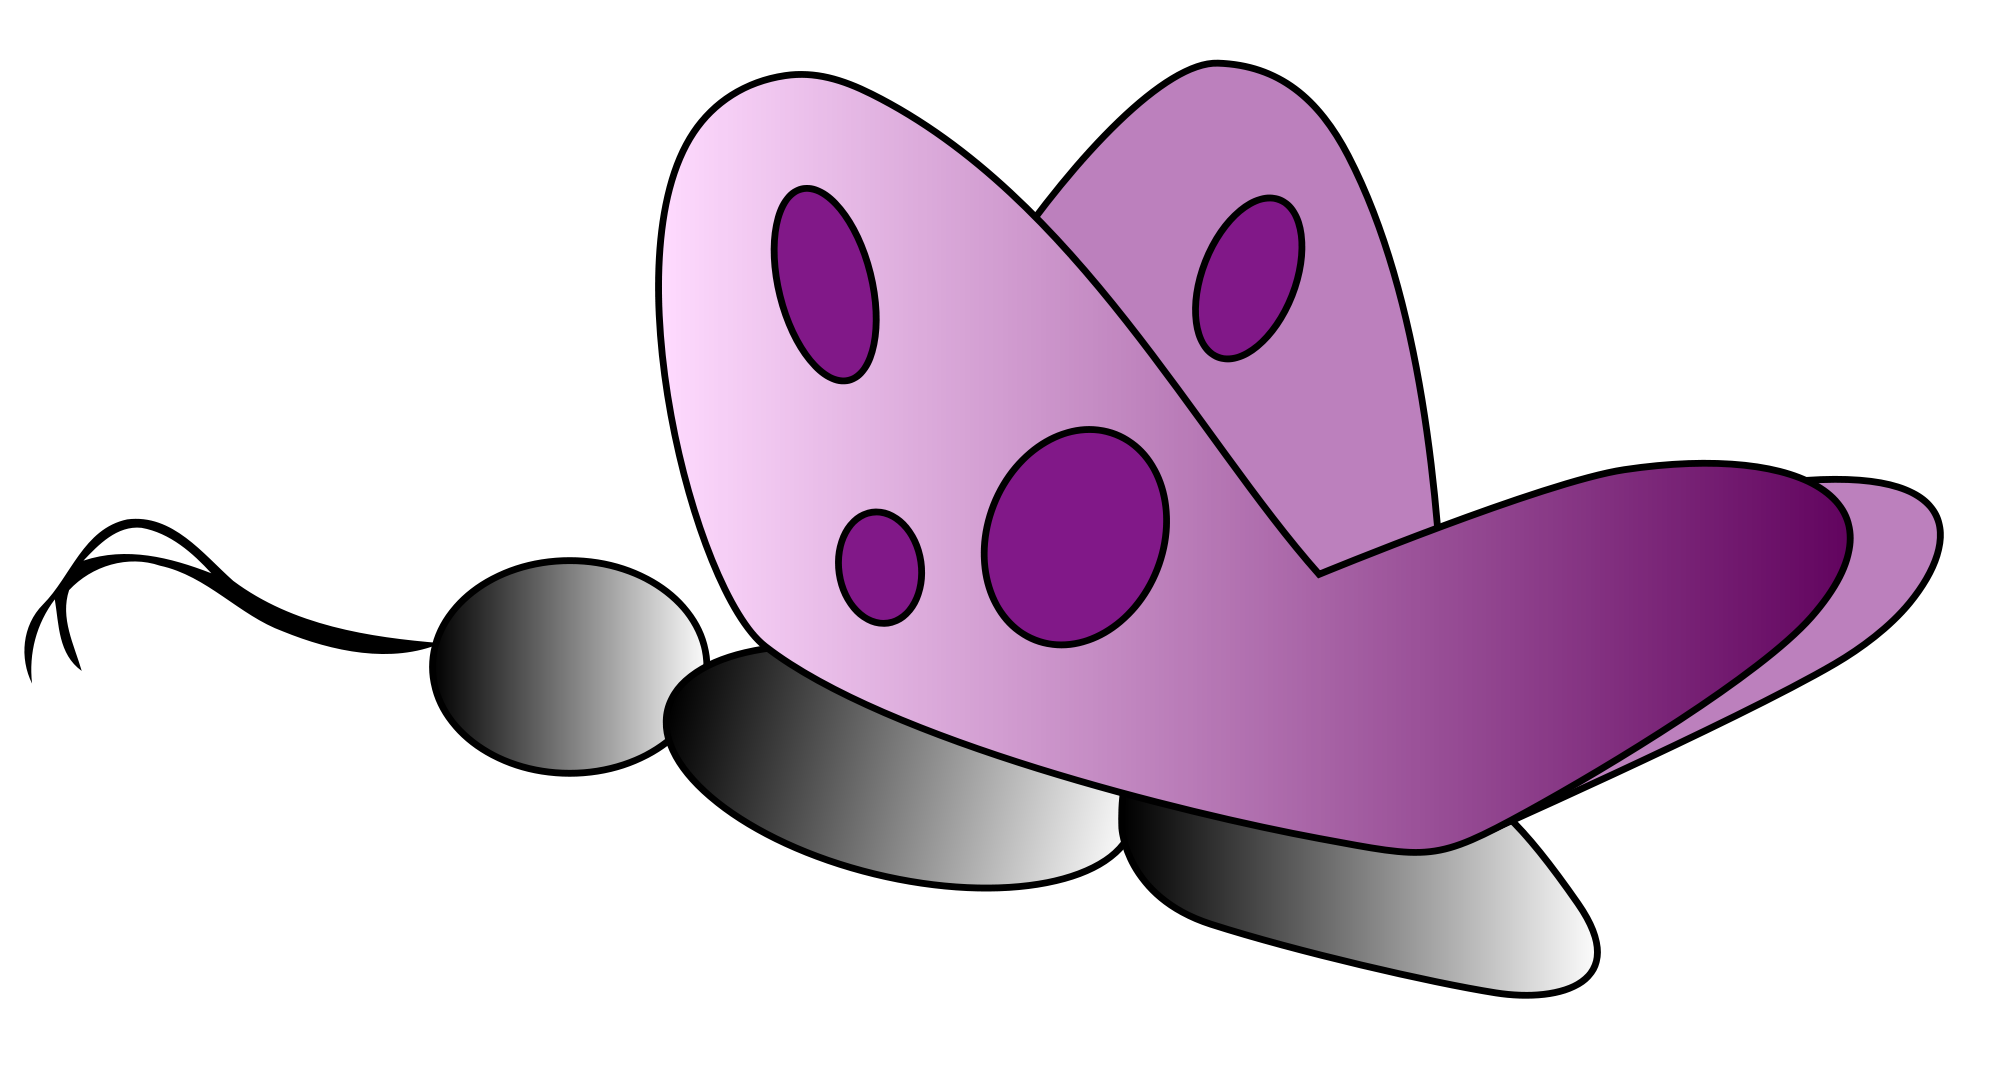 Commons clipart acceptance. File butterfly svg wikimedia